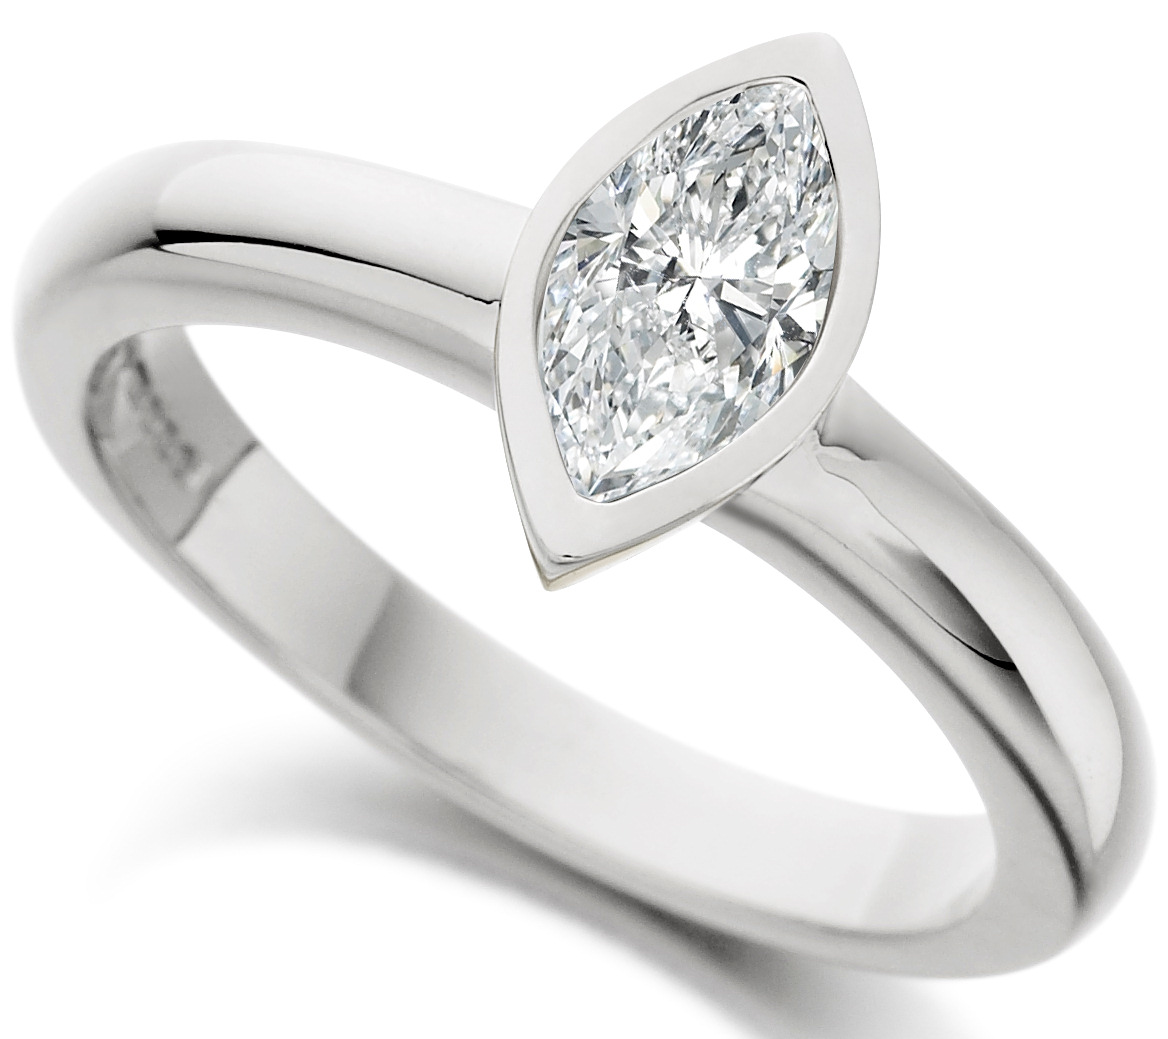 Marquise Cut Rub Over White Gold Engagement Ring ICD2554 Main Image